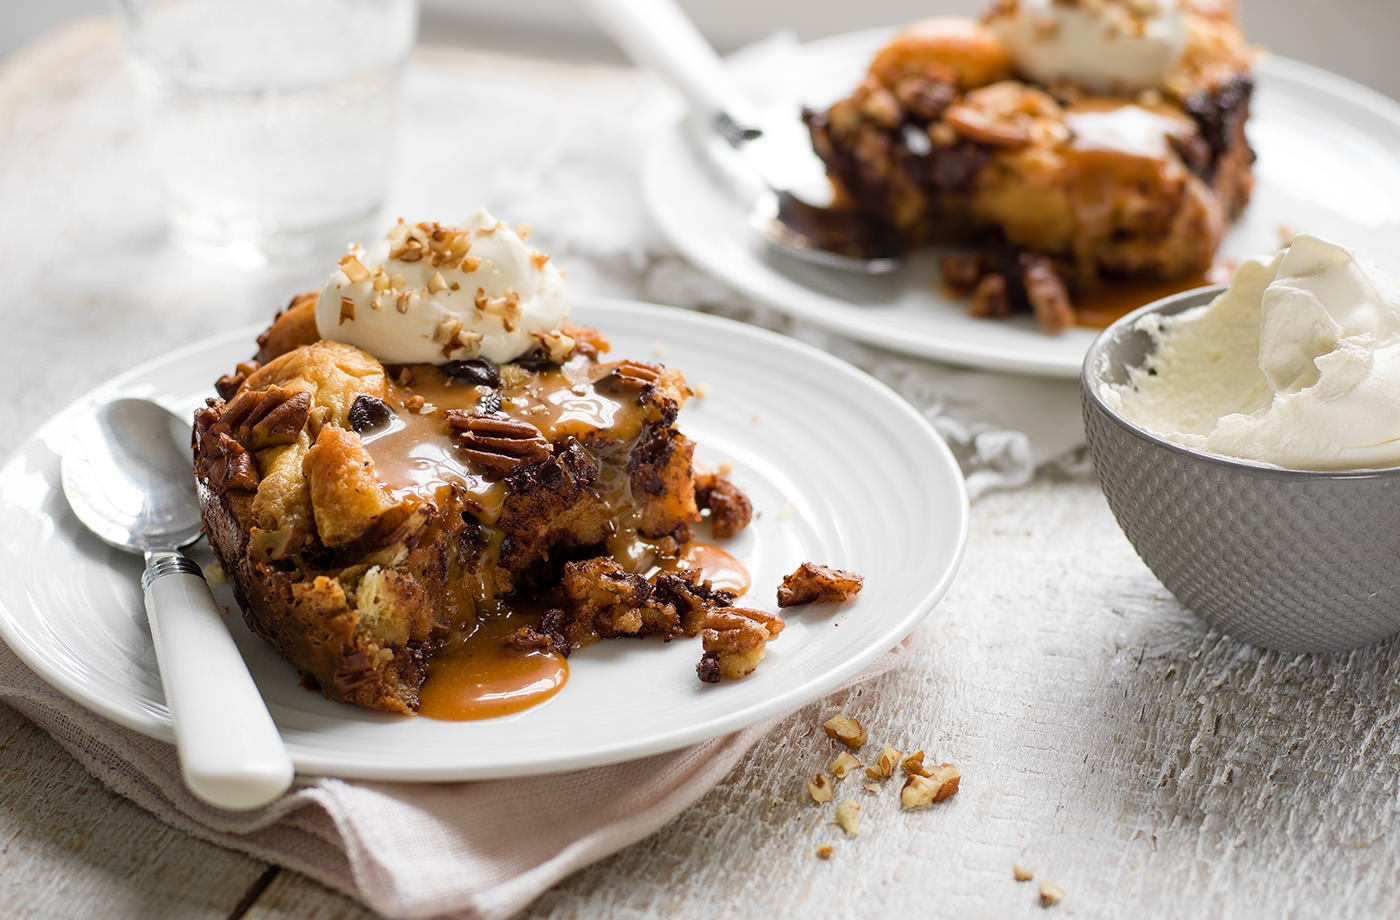 Slow cooker bread pudding with caramel